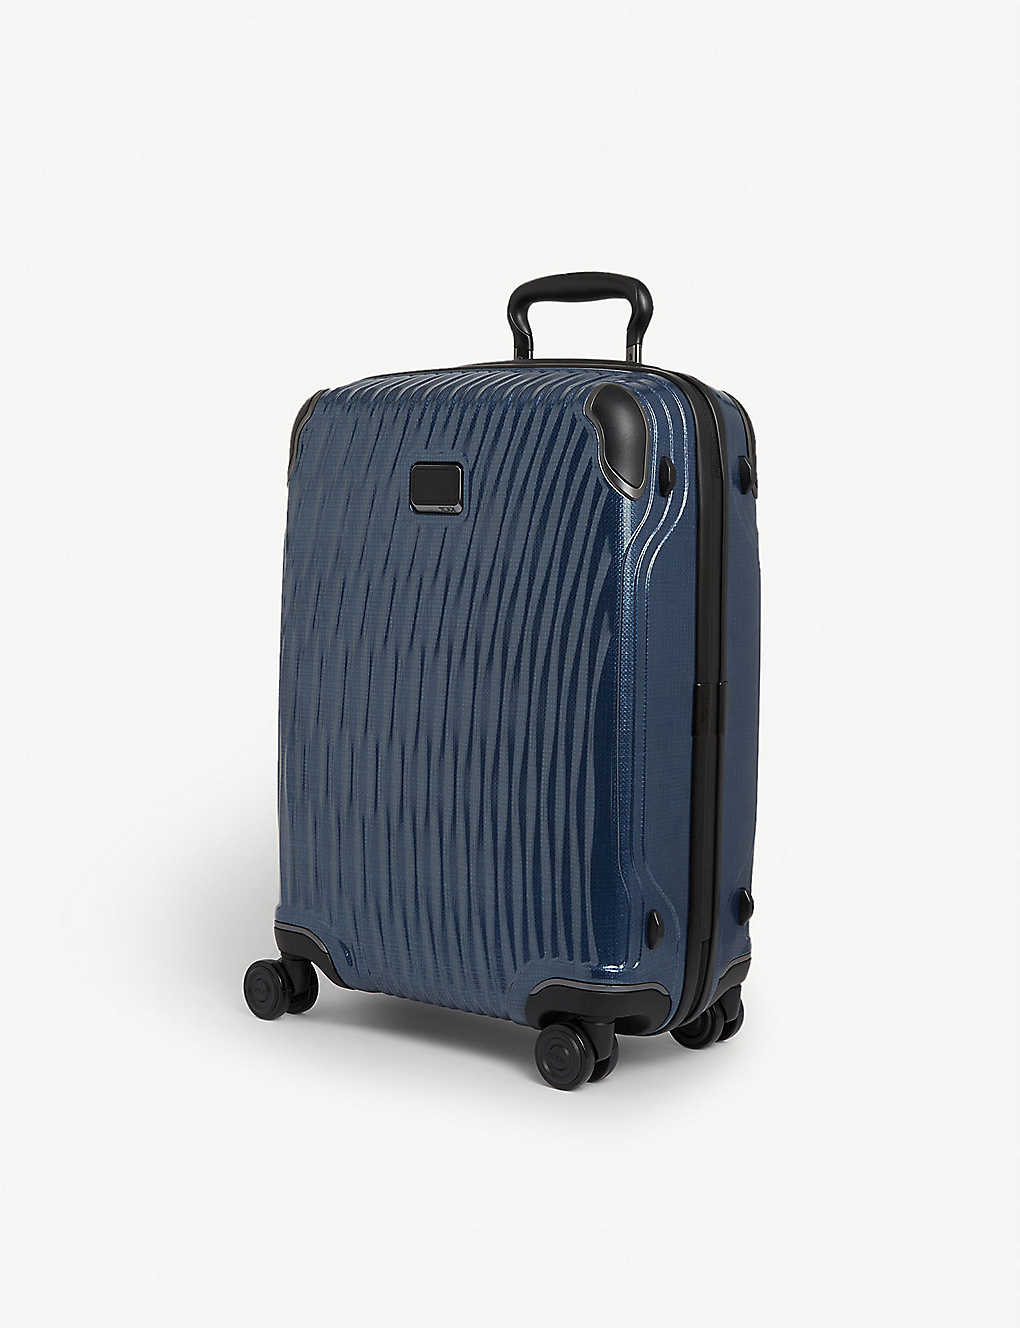 TUMI: Latitude International Slim Carry-On suitcase 55cm